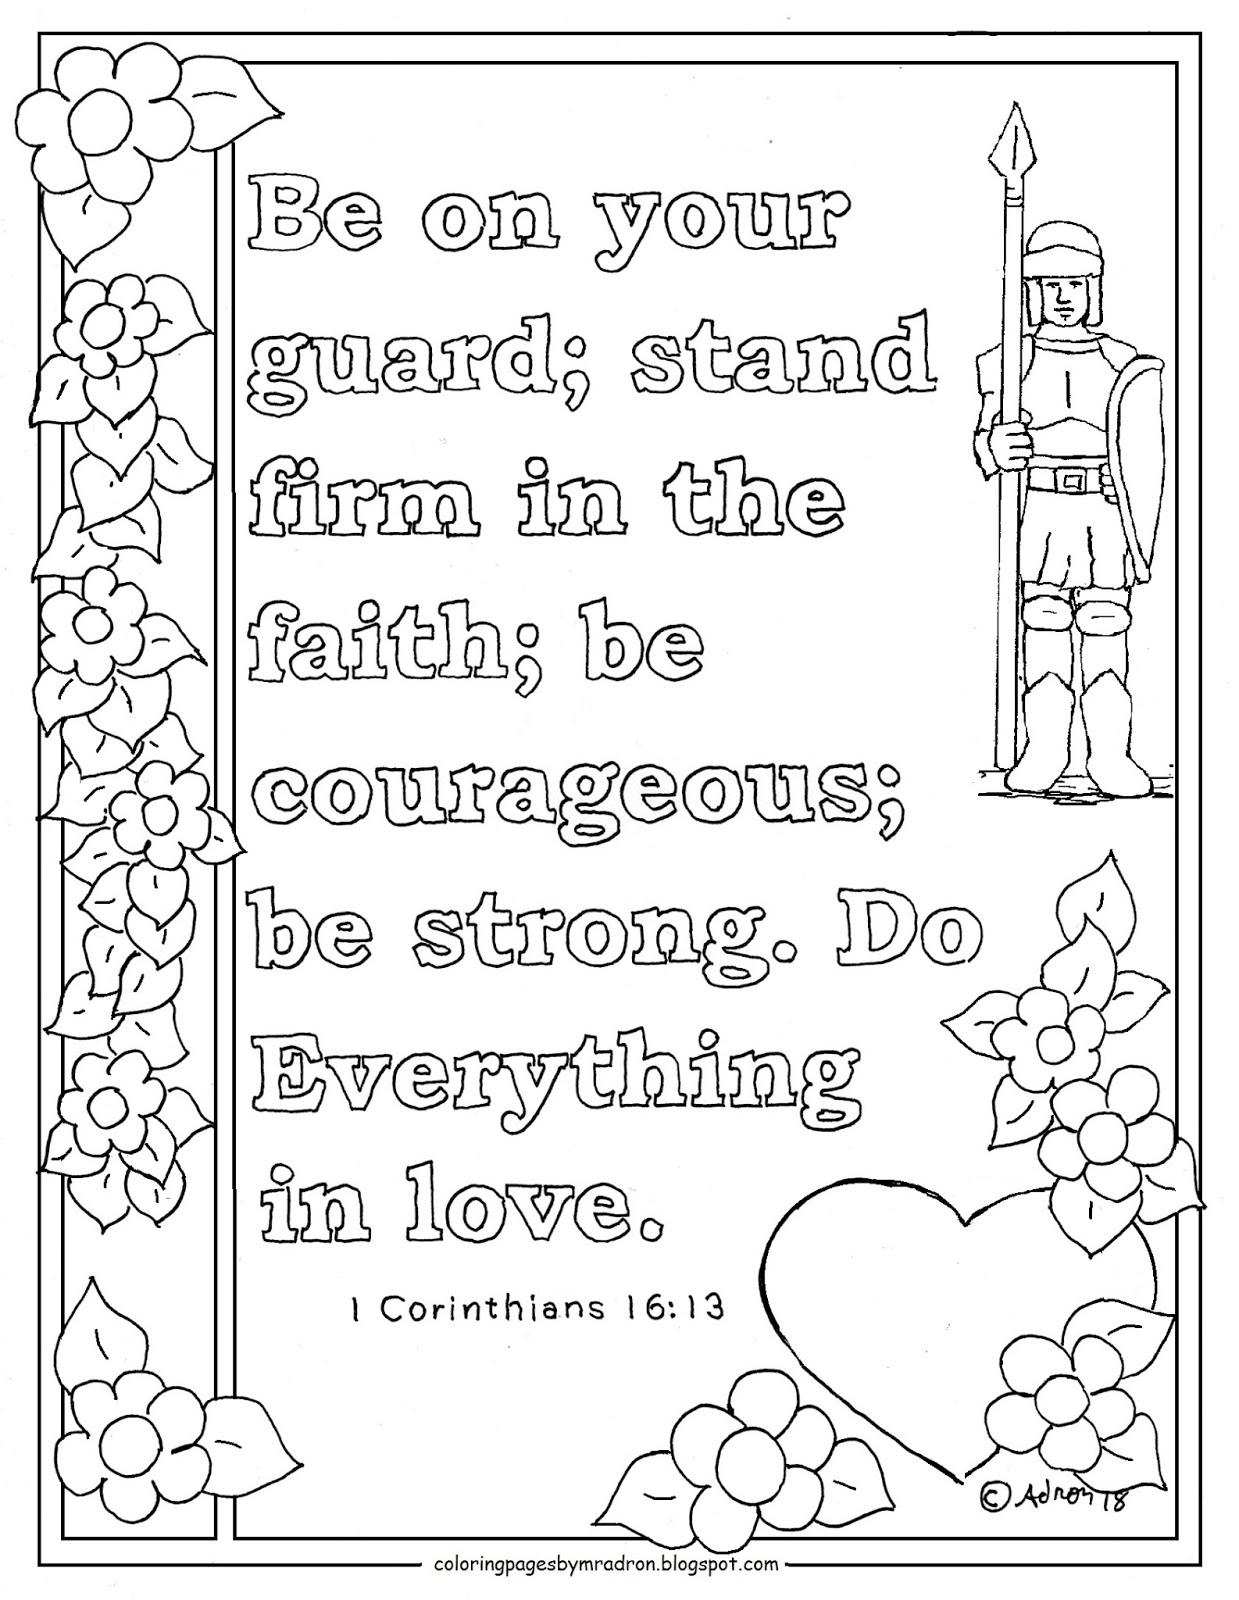 Coloring Pages For Kids By Mr Adron 1 Corinthians 16 13